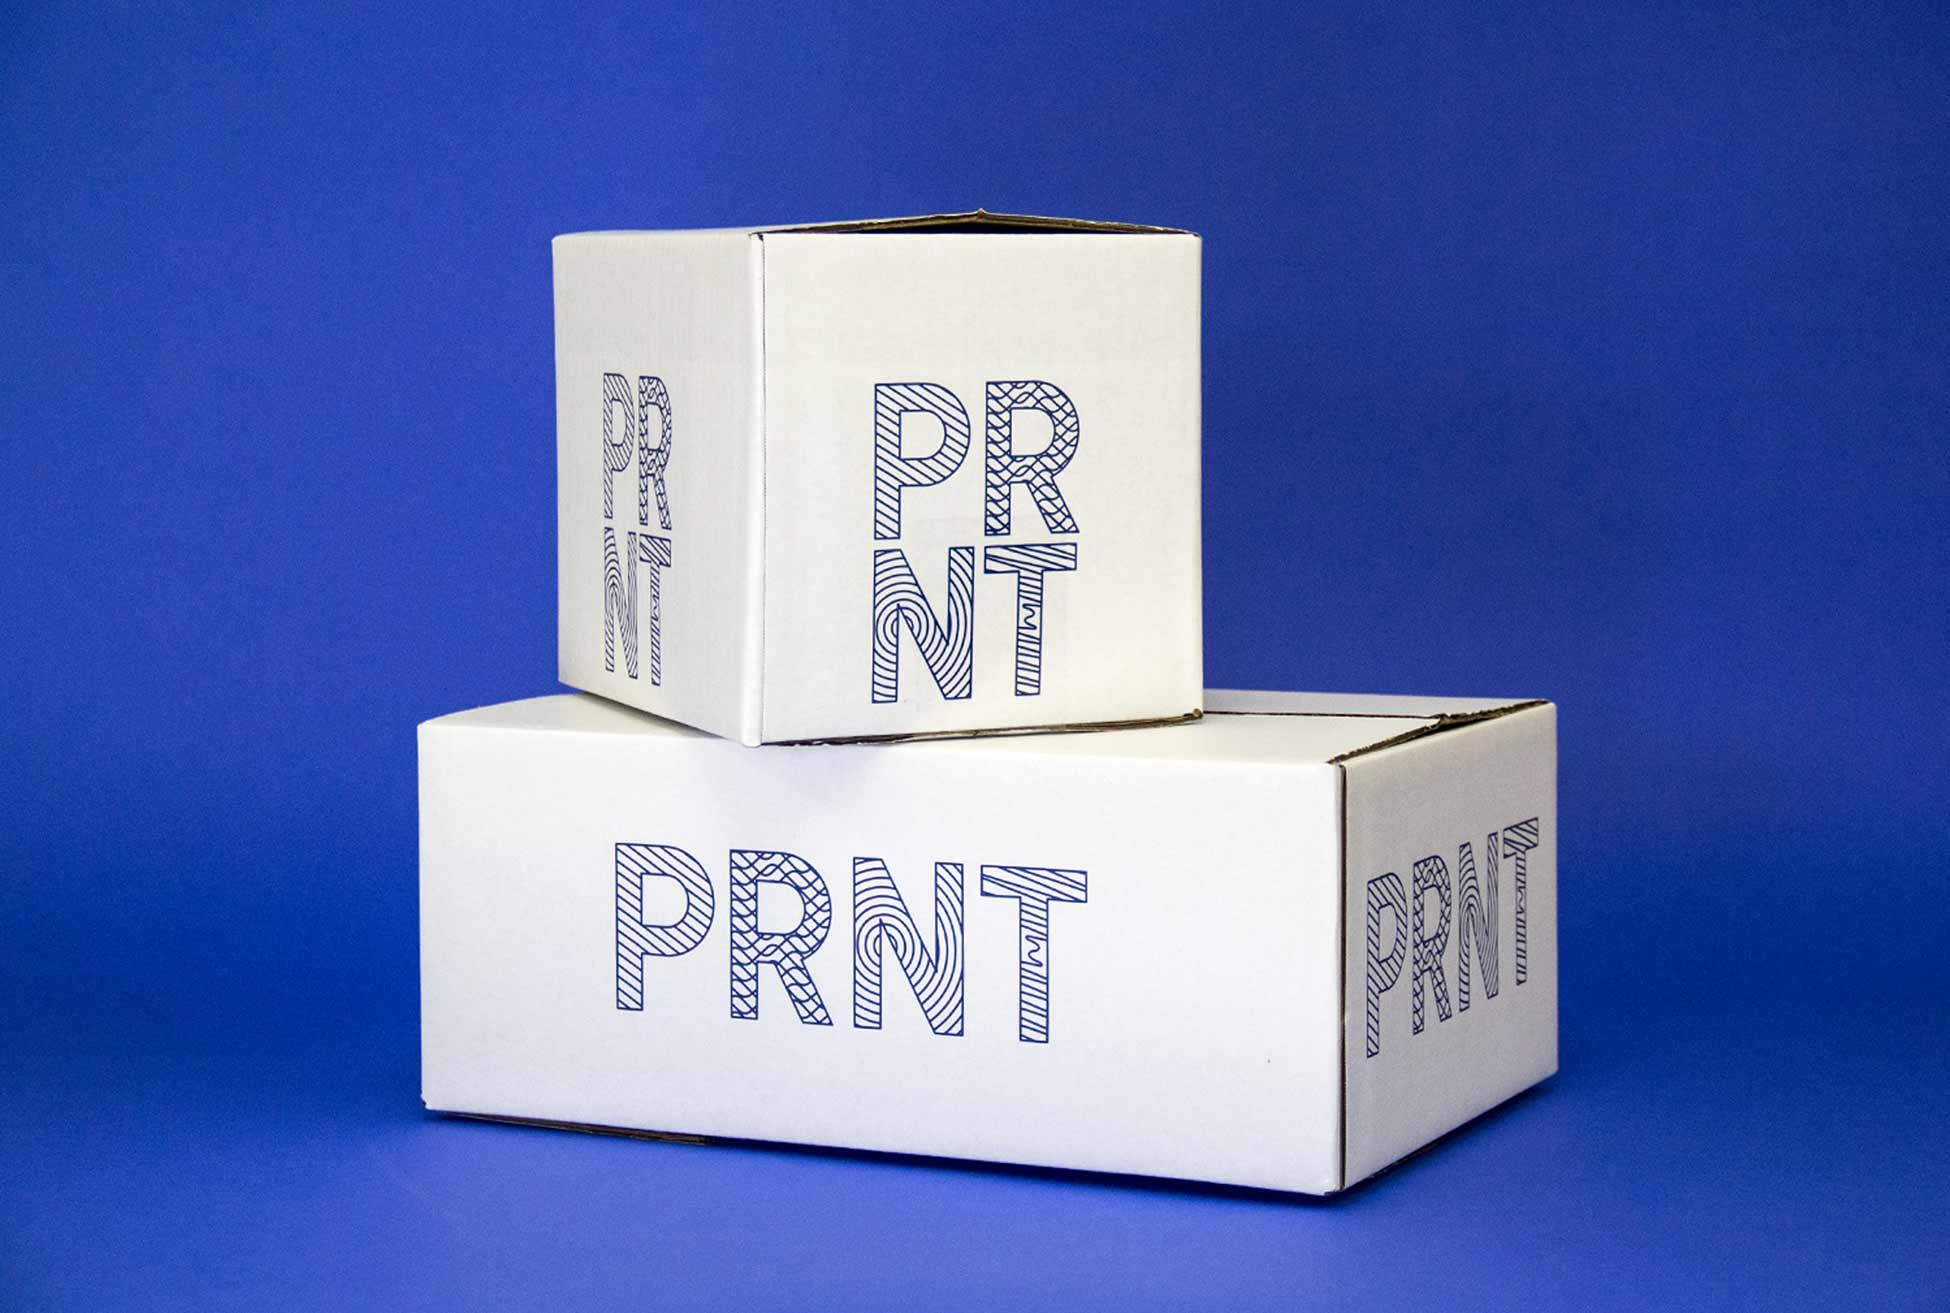 PRNT_boxes-stacked.jpg